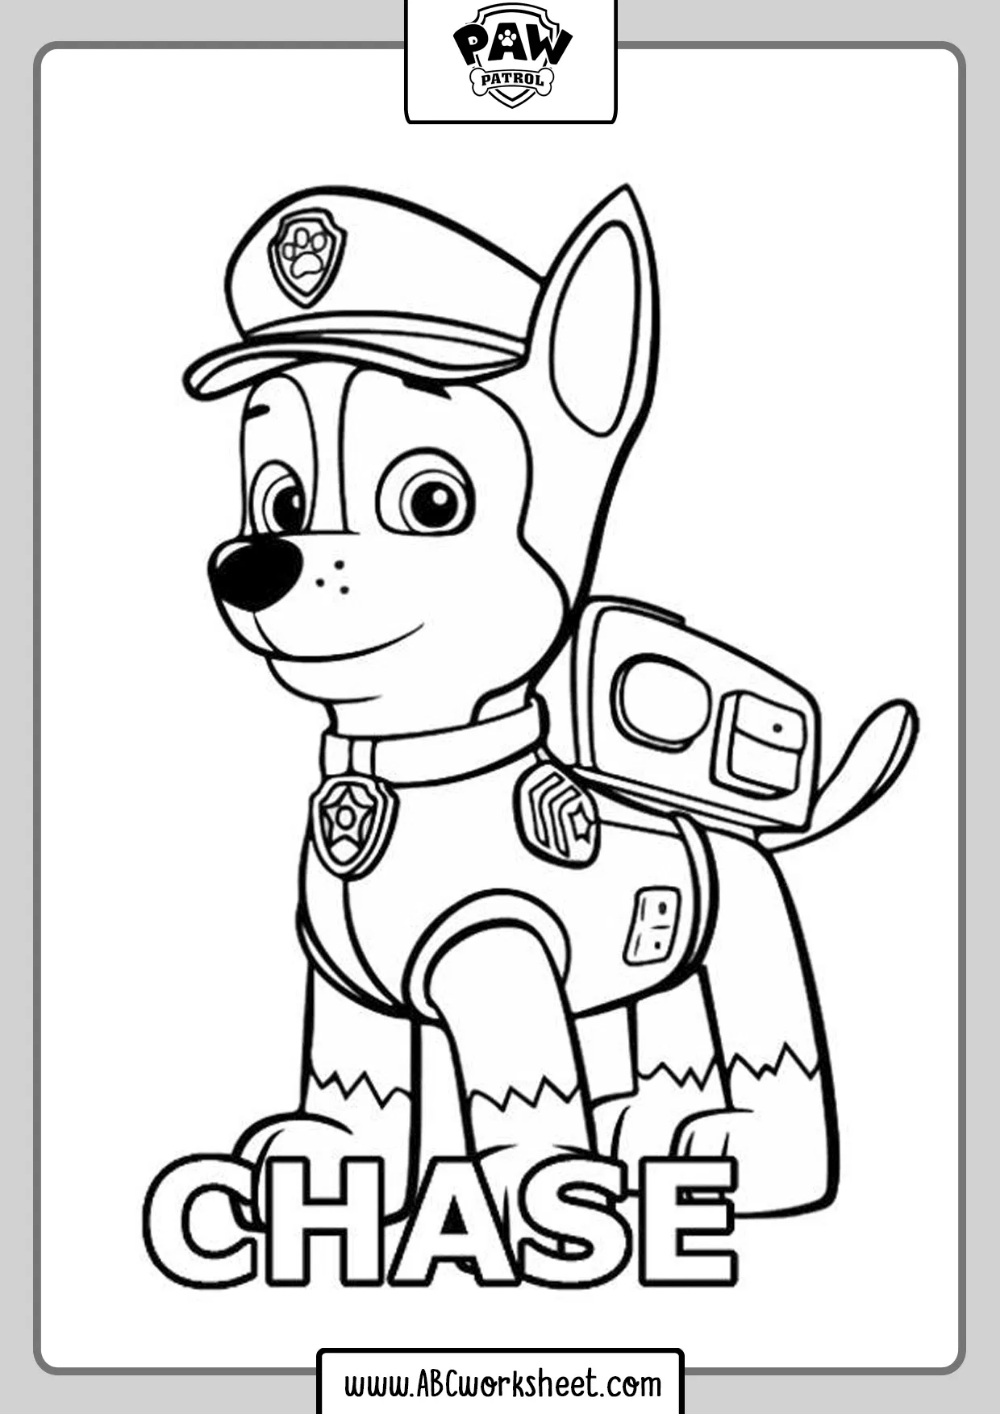 Chase Paw Patrol Drawing For Coloring In 2020 Paw Patrol Coloring Pages Paw Patrol Coloring Mermaid Coloring Pages